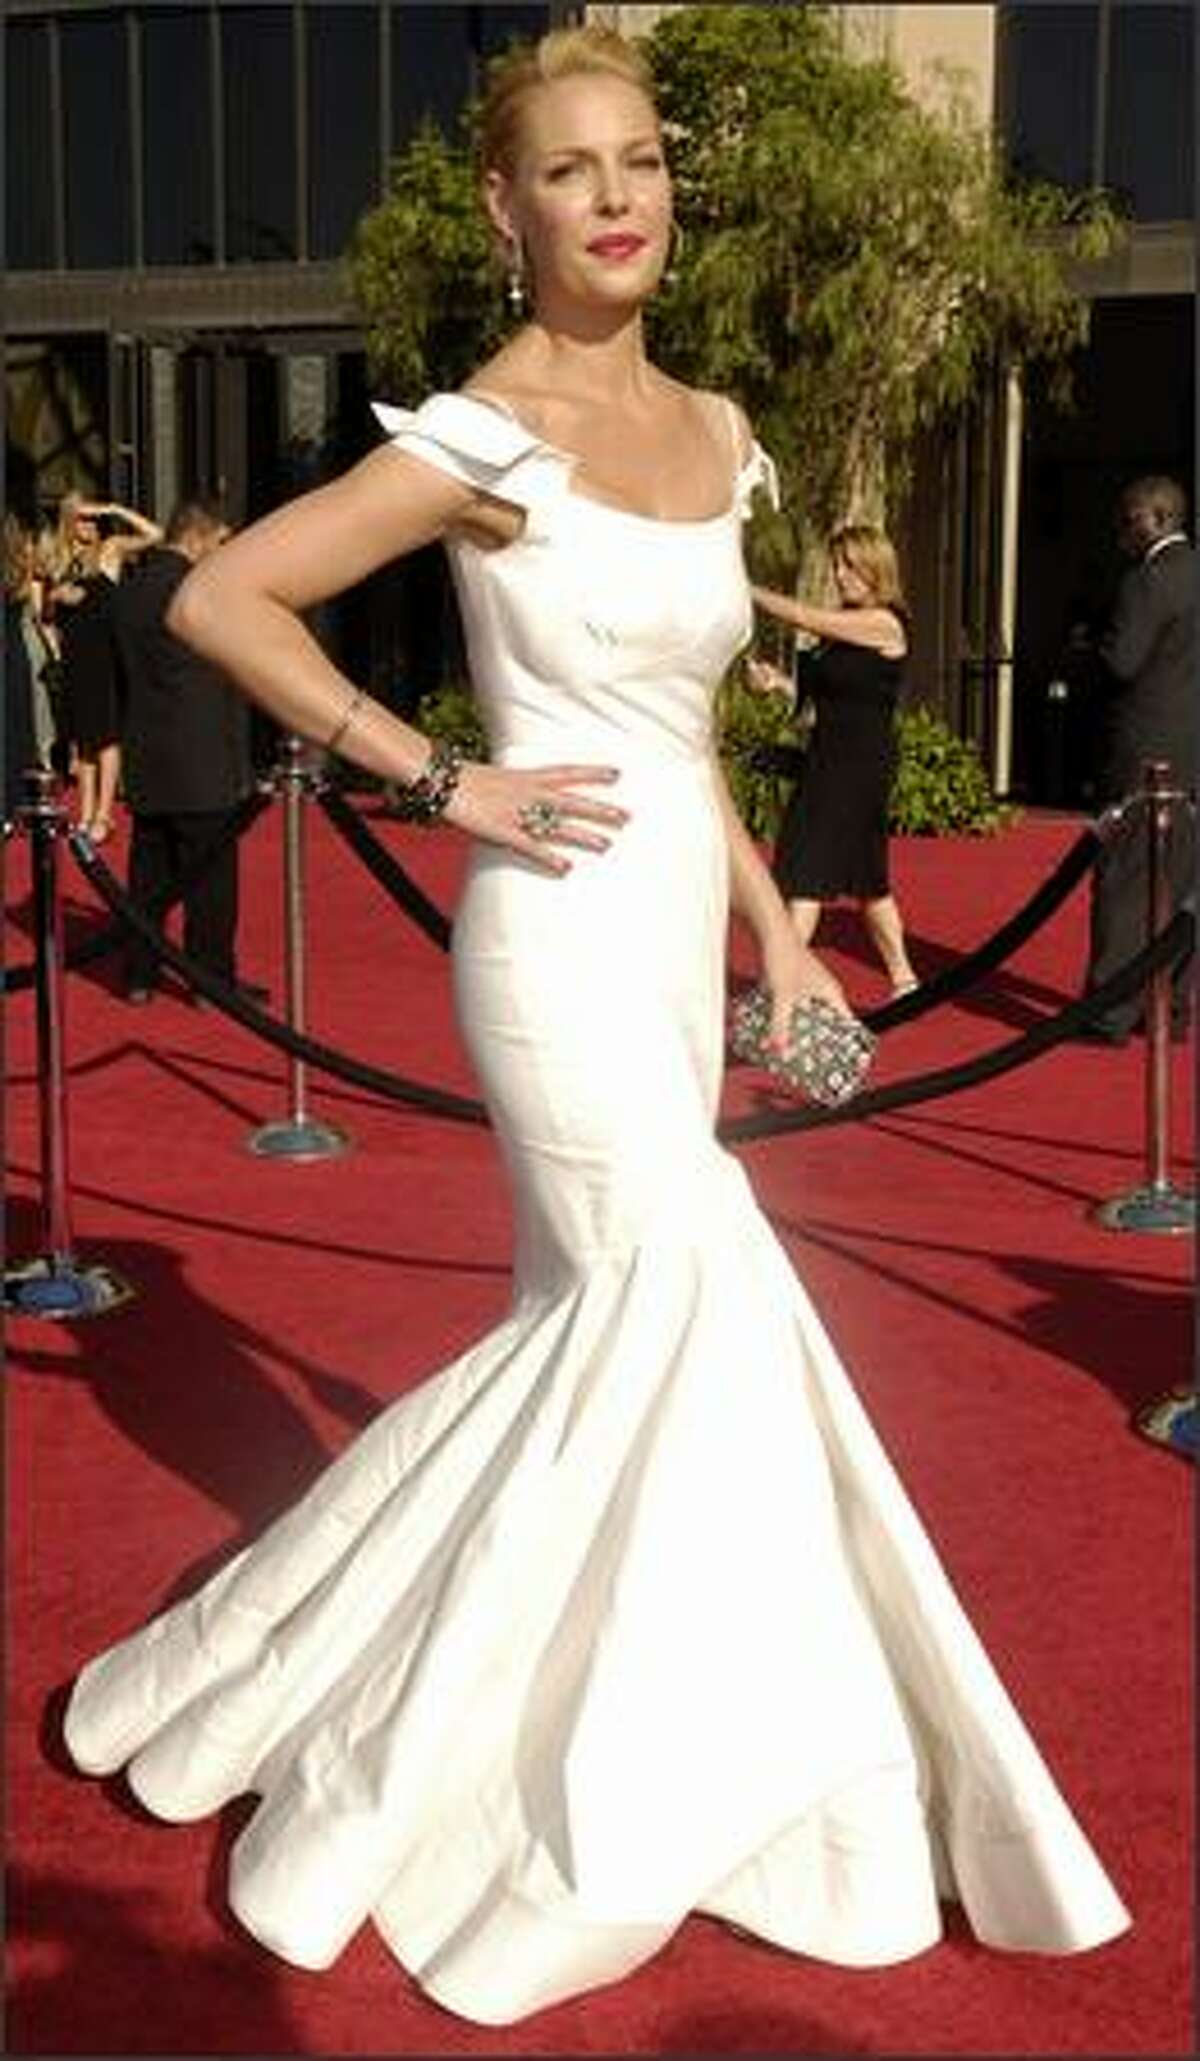 Katherine Heigl arrives for the 59th Primetime Emmy Awards. Heigl is nominated for outstanding supporting actress in a drama series for her work on